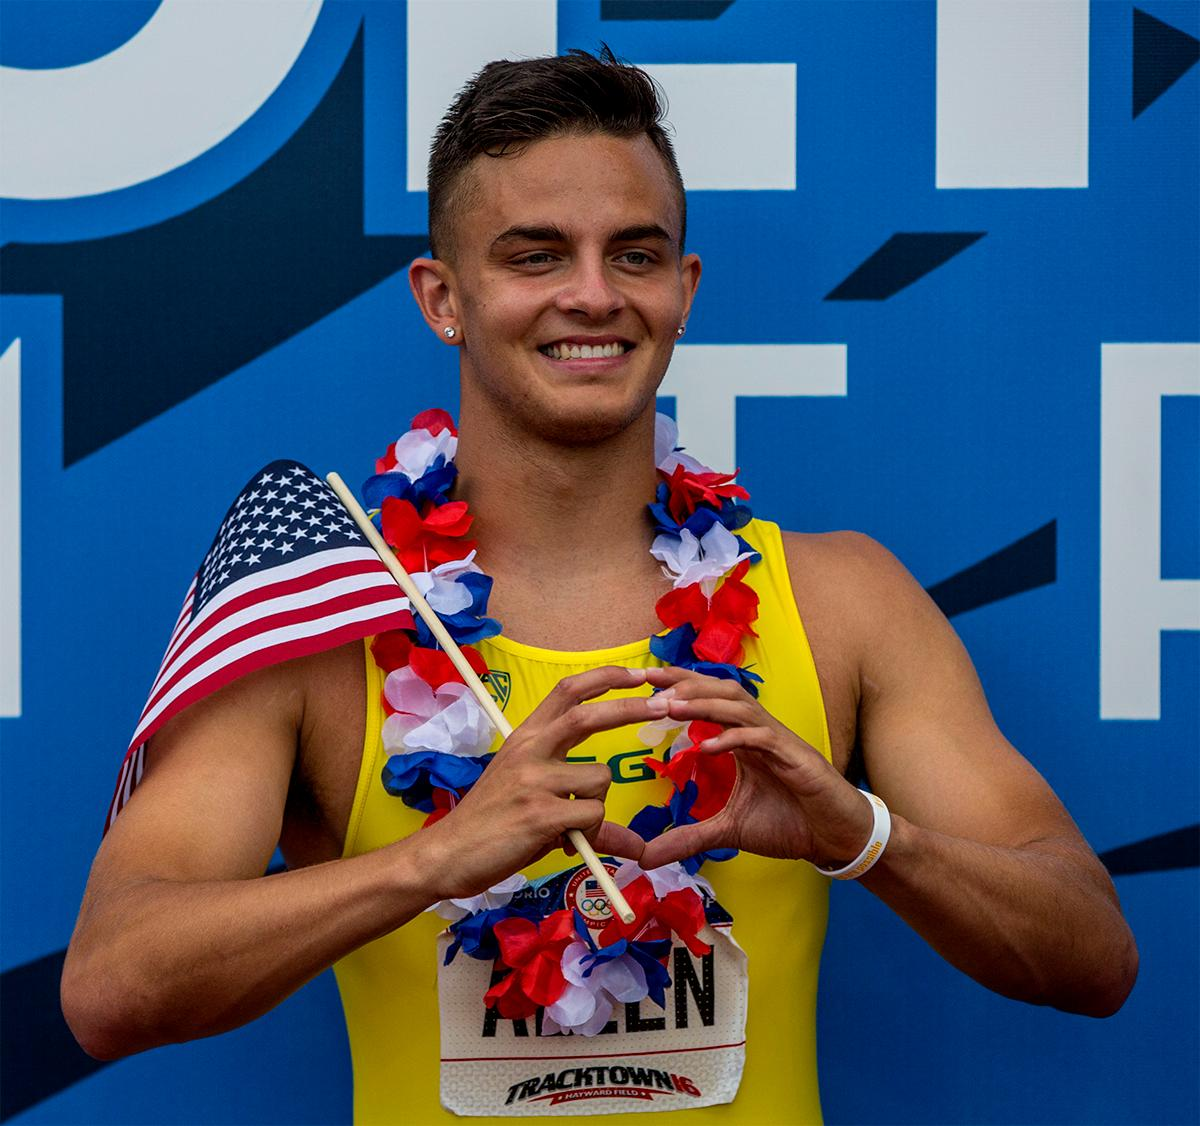 Oregon's Devon Allen throws up the Oregon's 'O' after taking victory in the 110 meter hurdles in 13.03. Photo by August Frank, Oregon News Lab